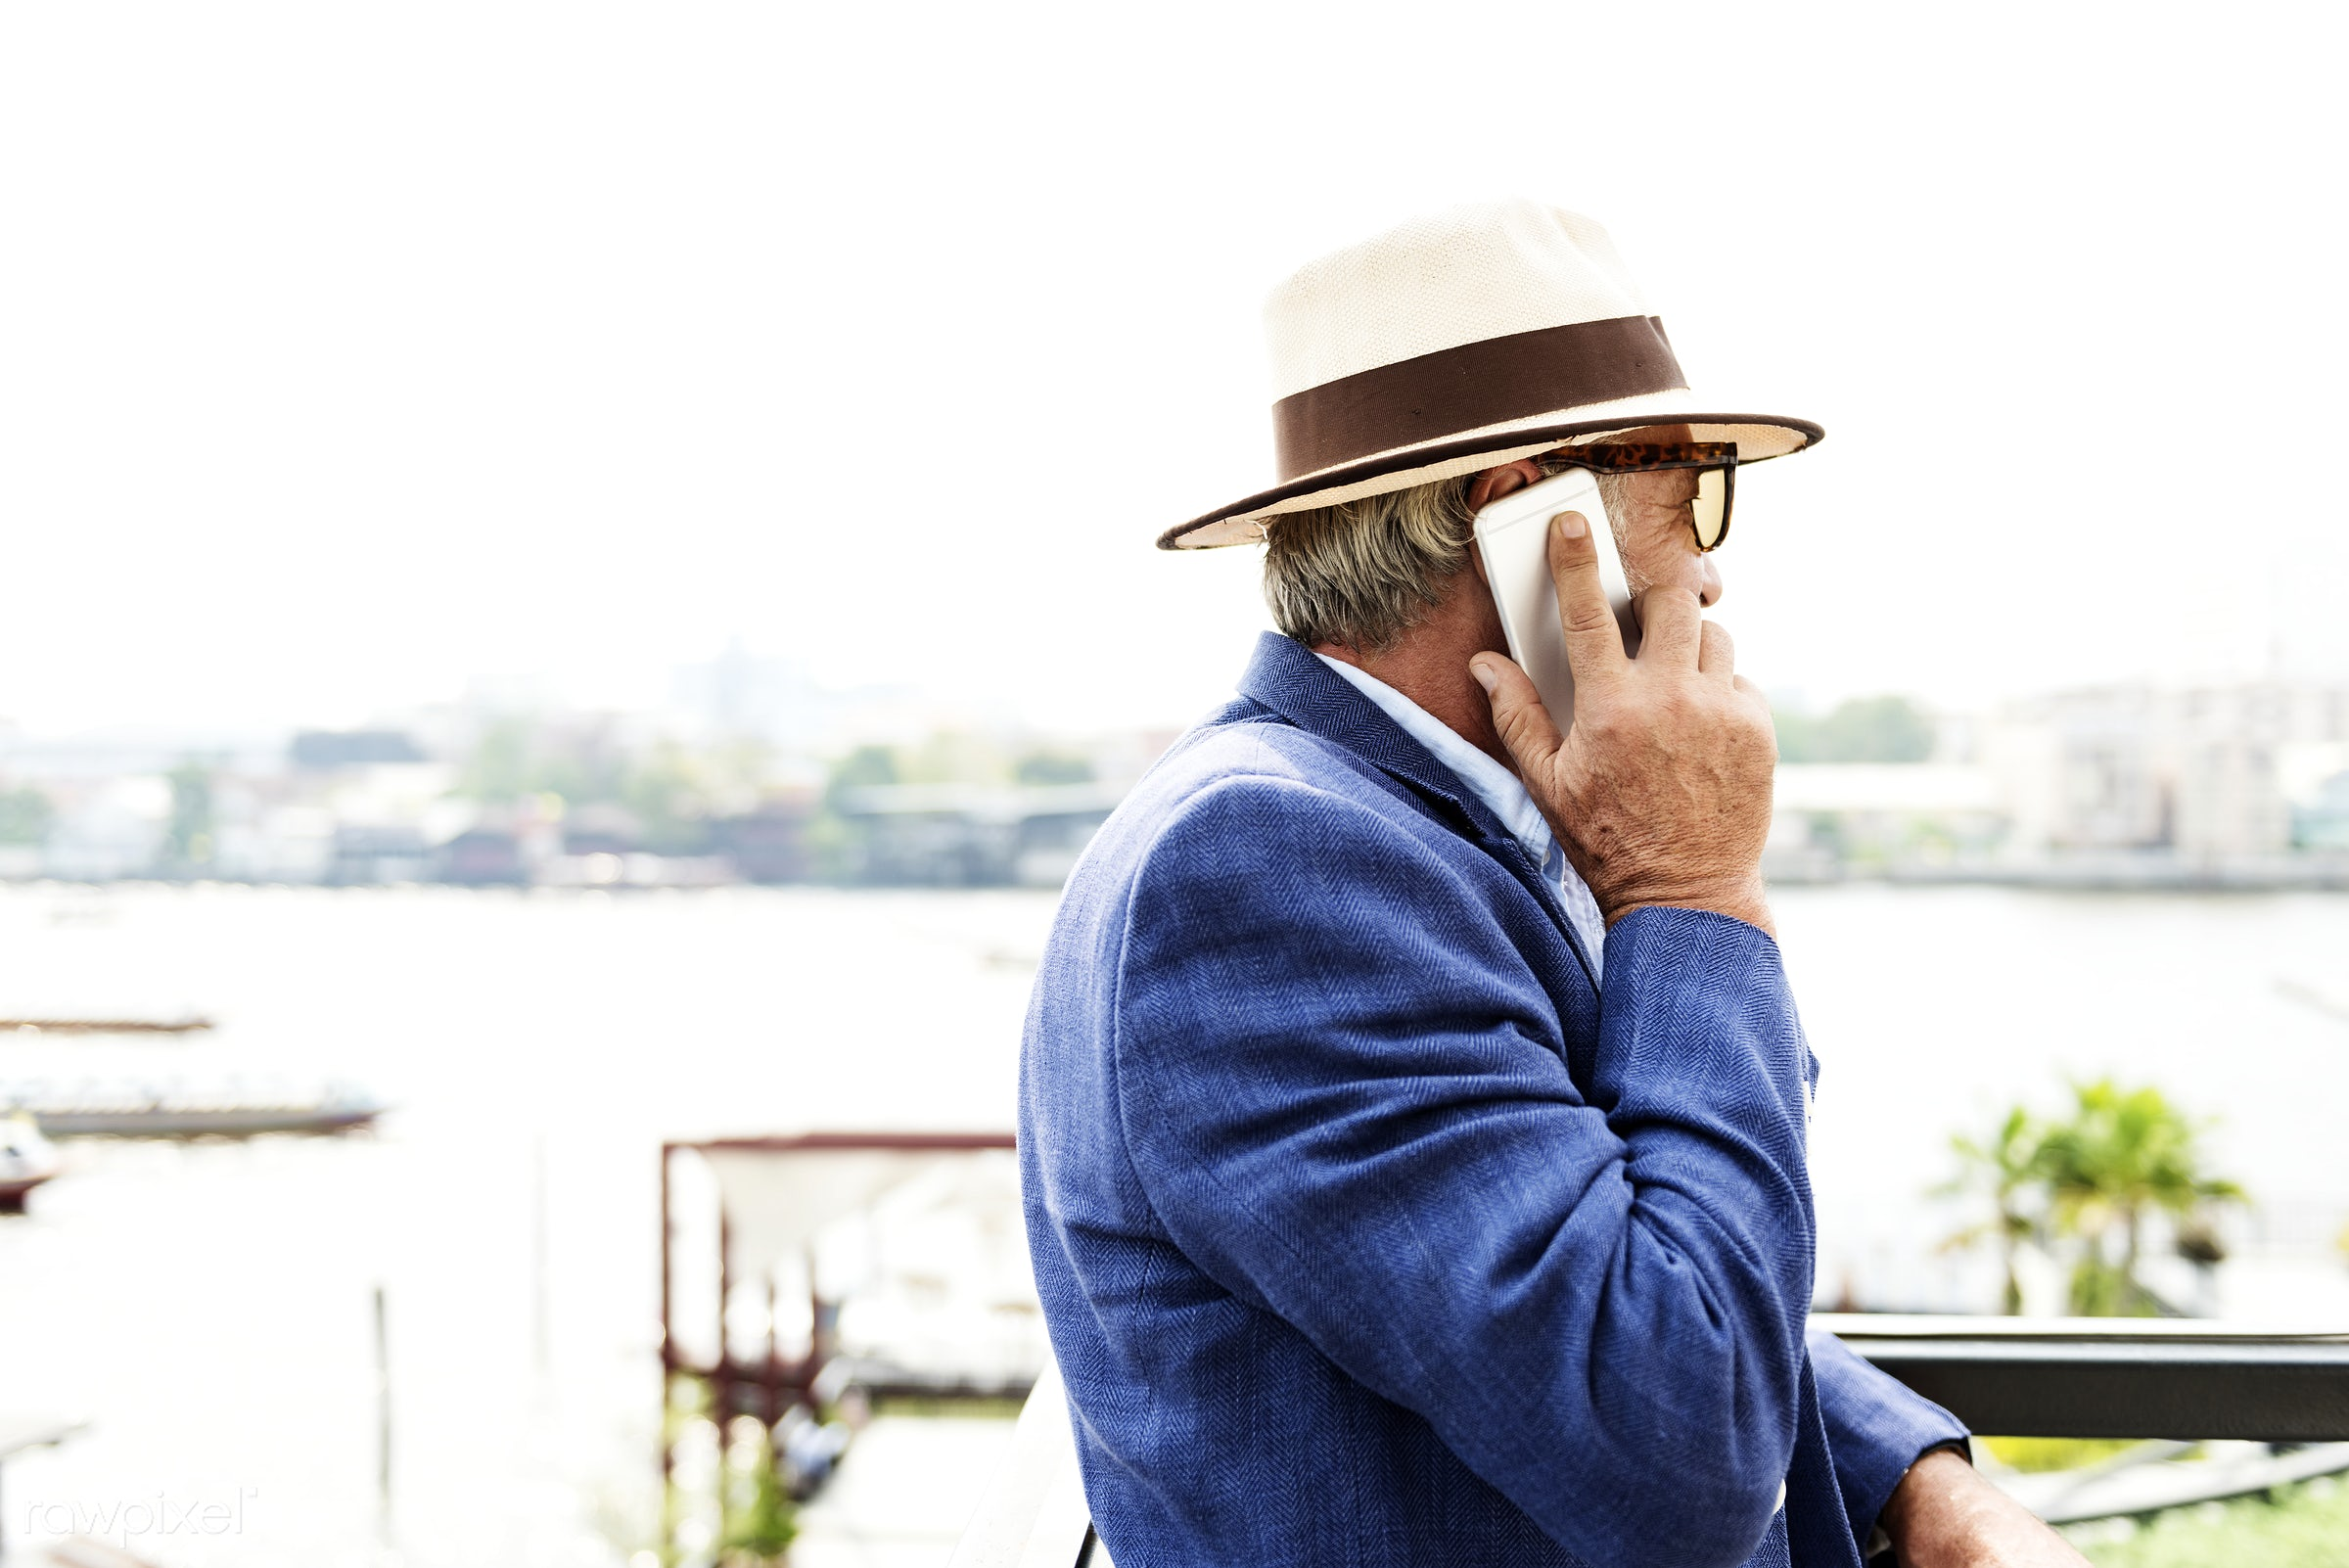 Elderly man is using mobile phone - connection, alone, beard, casual, cellphone, communication, device, digital, elderly,...